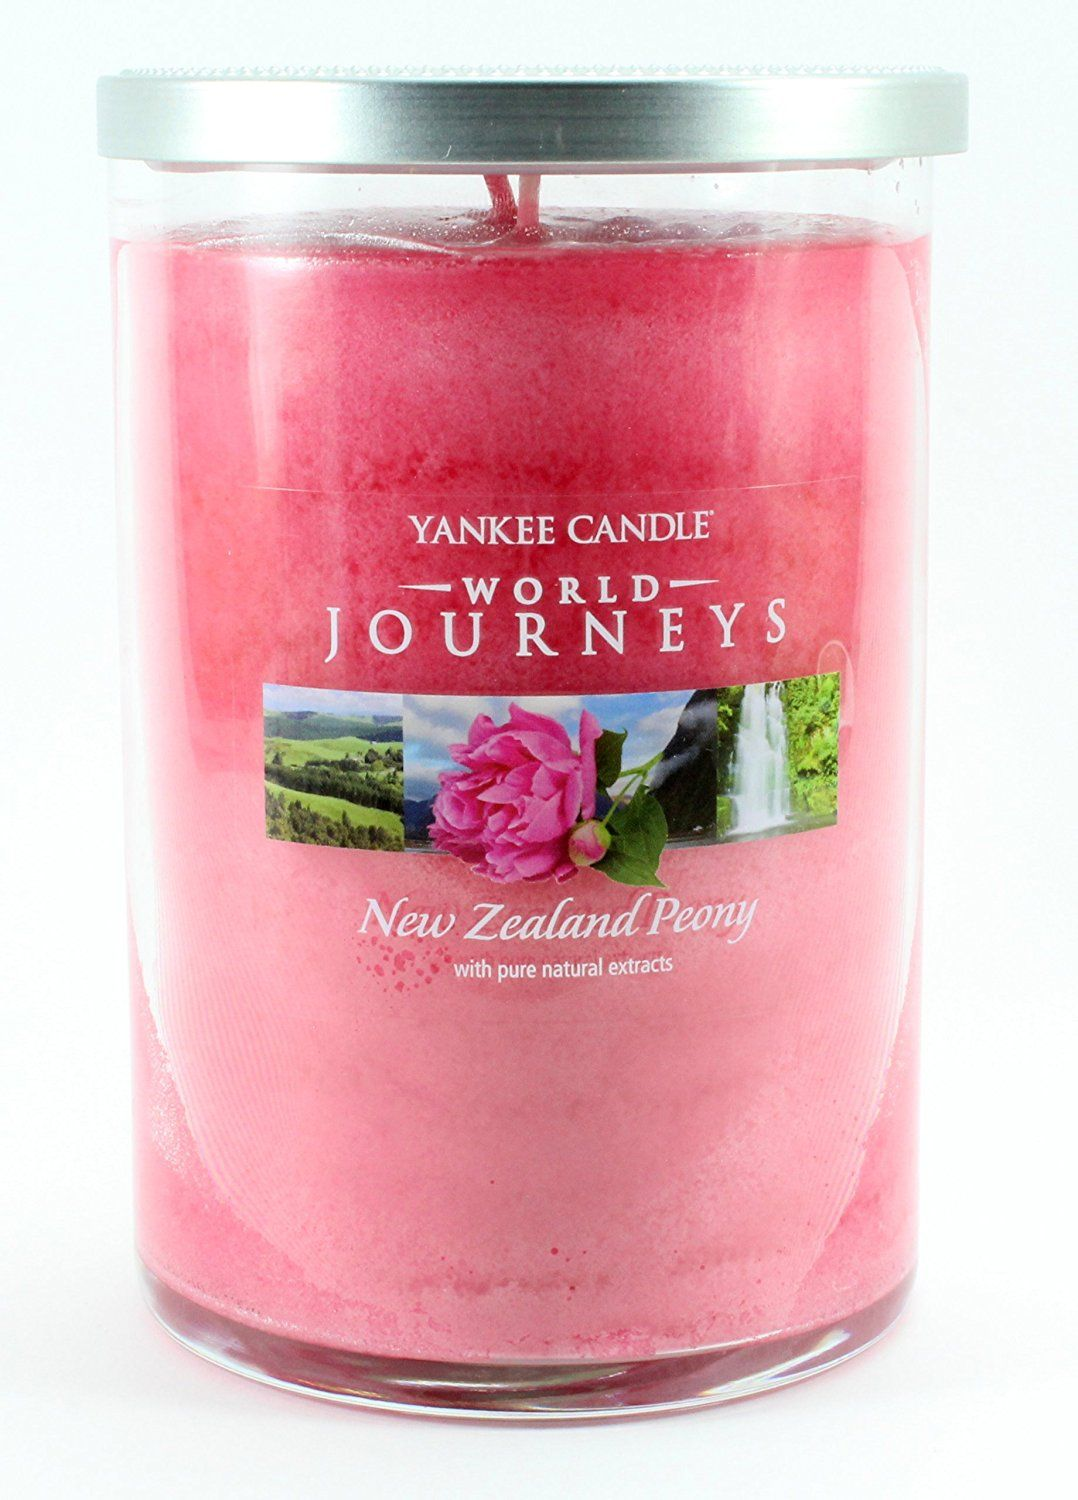 Yankee Candle World Journeys 22 oz 2 Wick Tumbler Candle